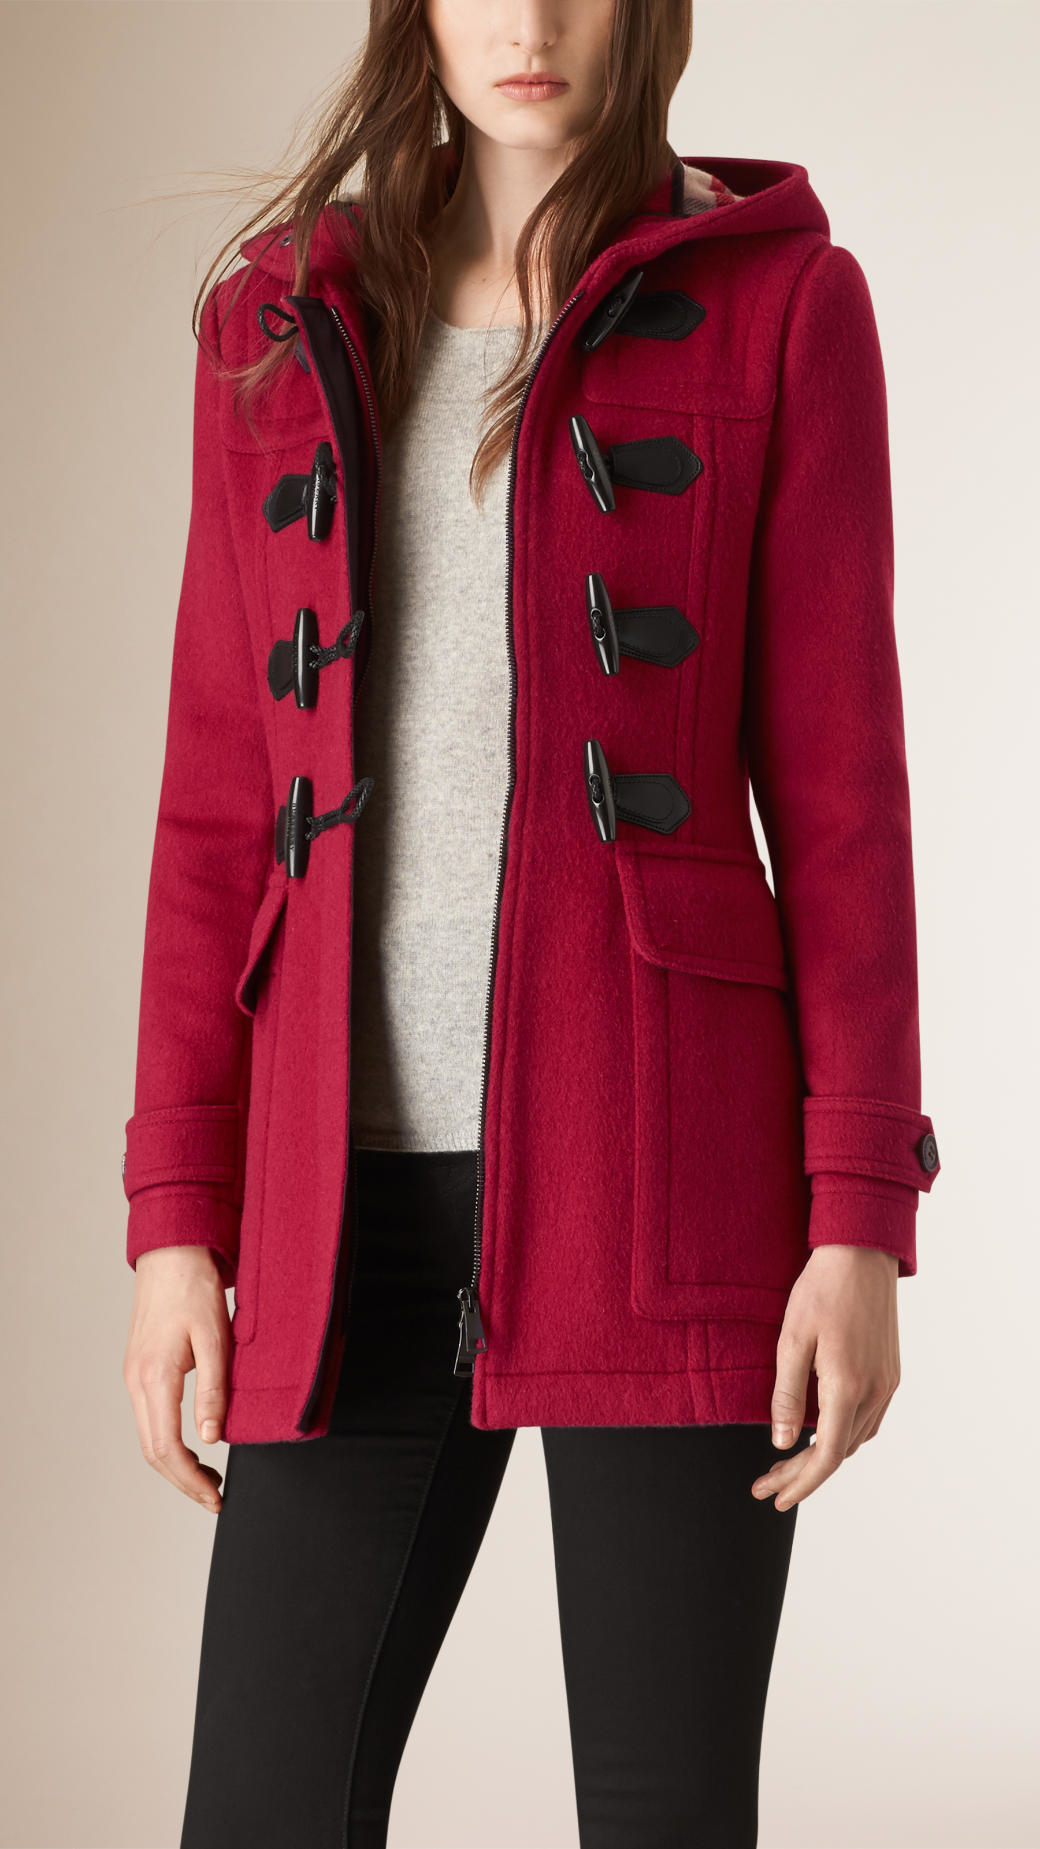 Burberry Fitted Wool Duffle Coat in Pink | Lyst